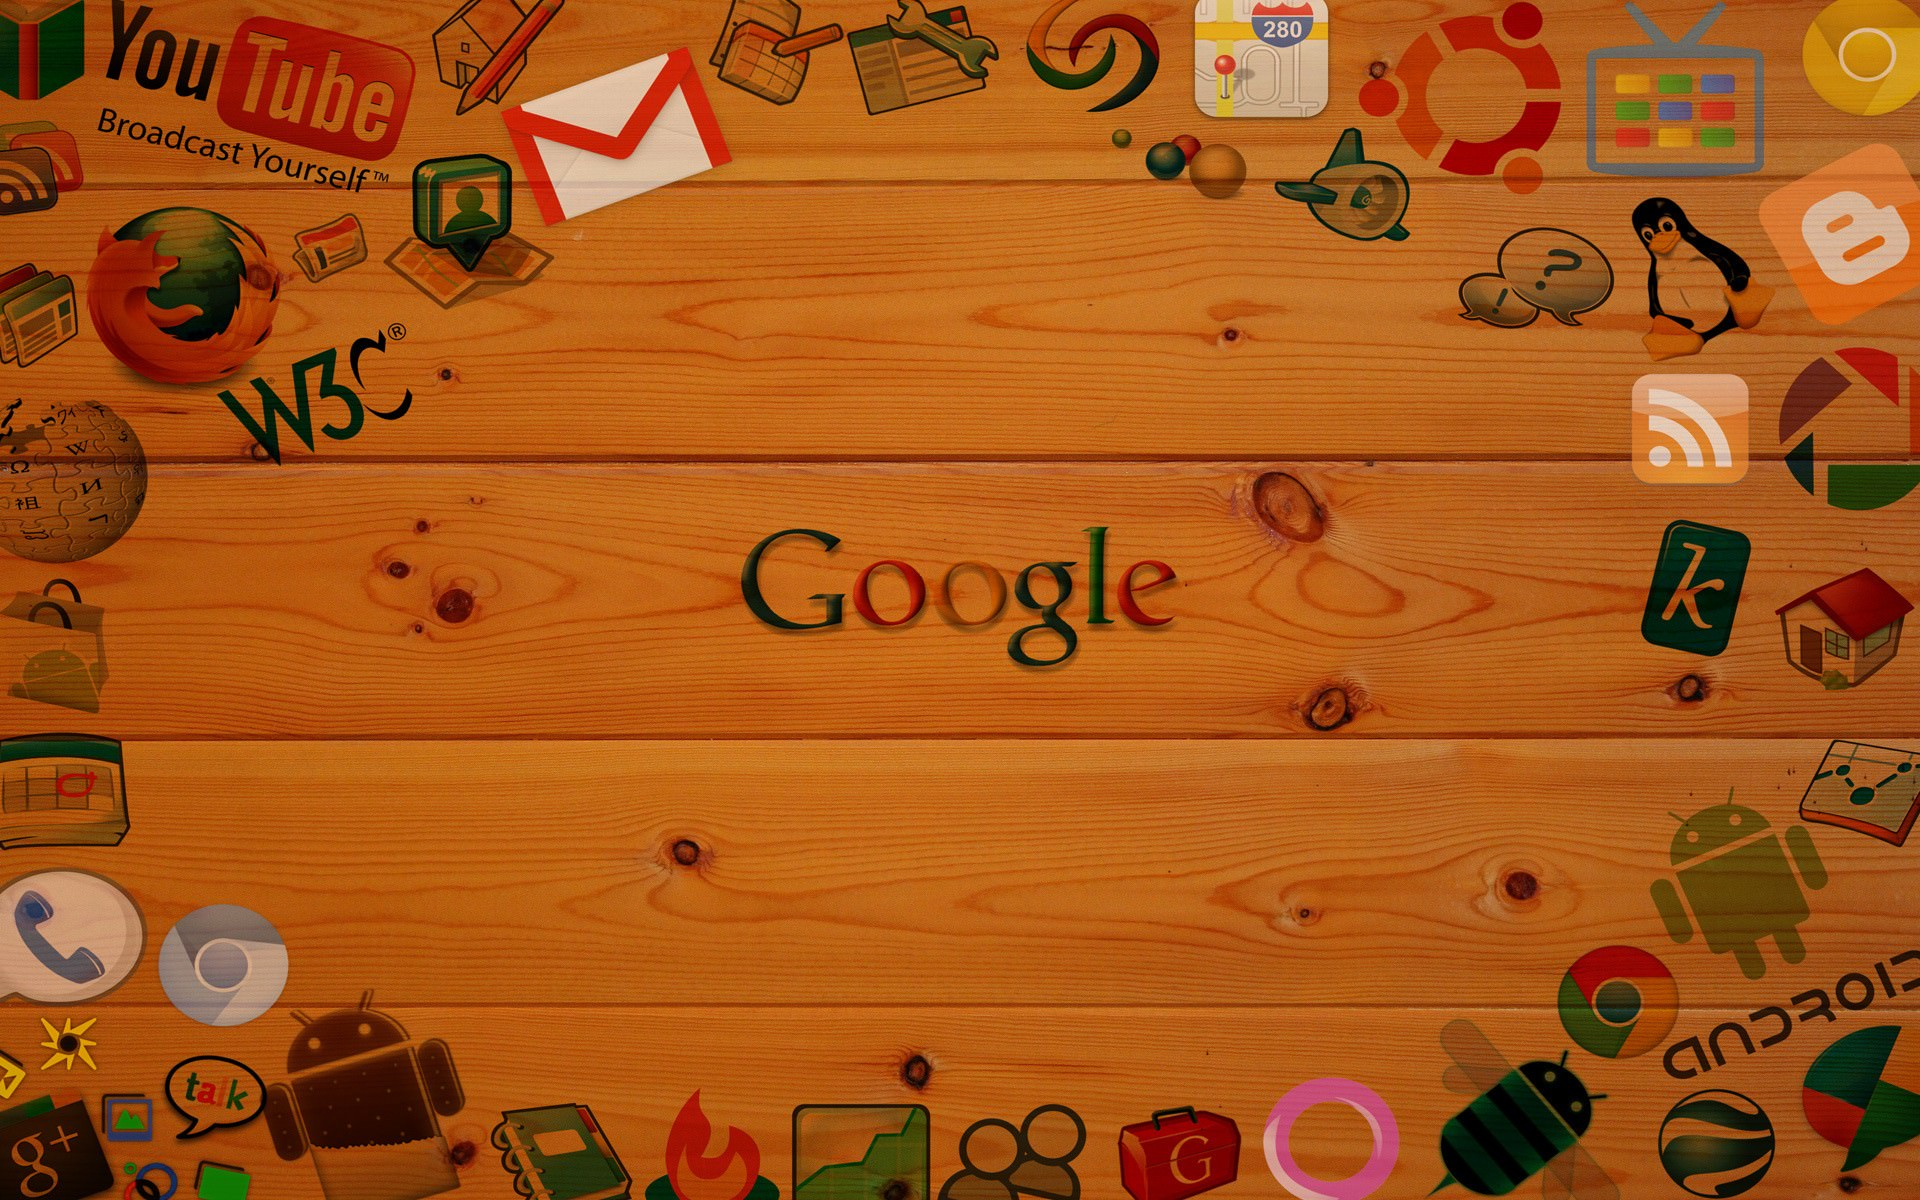 Background image for google - Background On Google